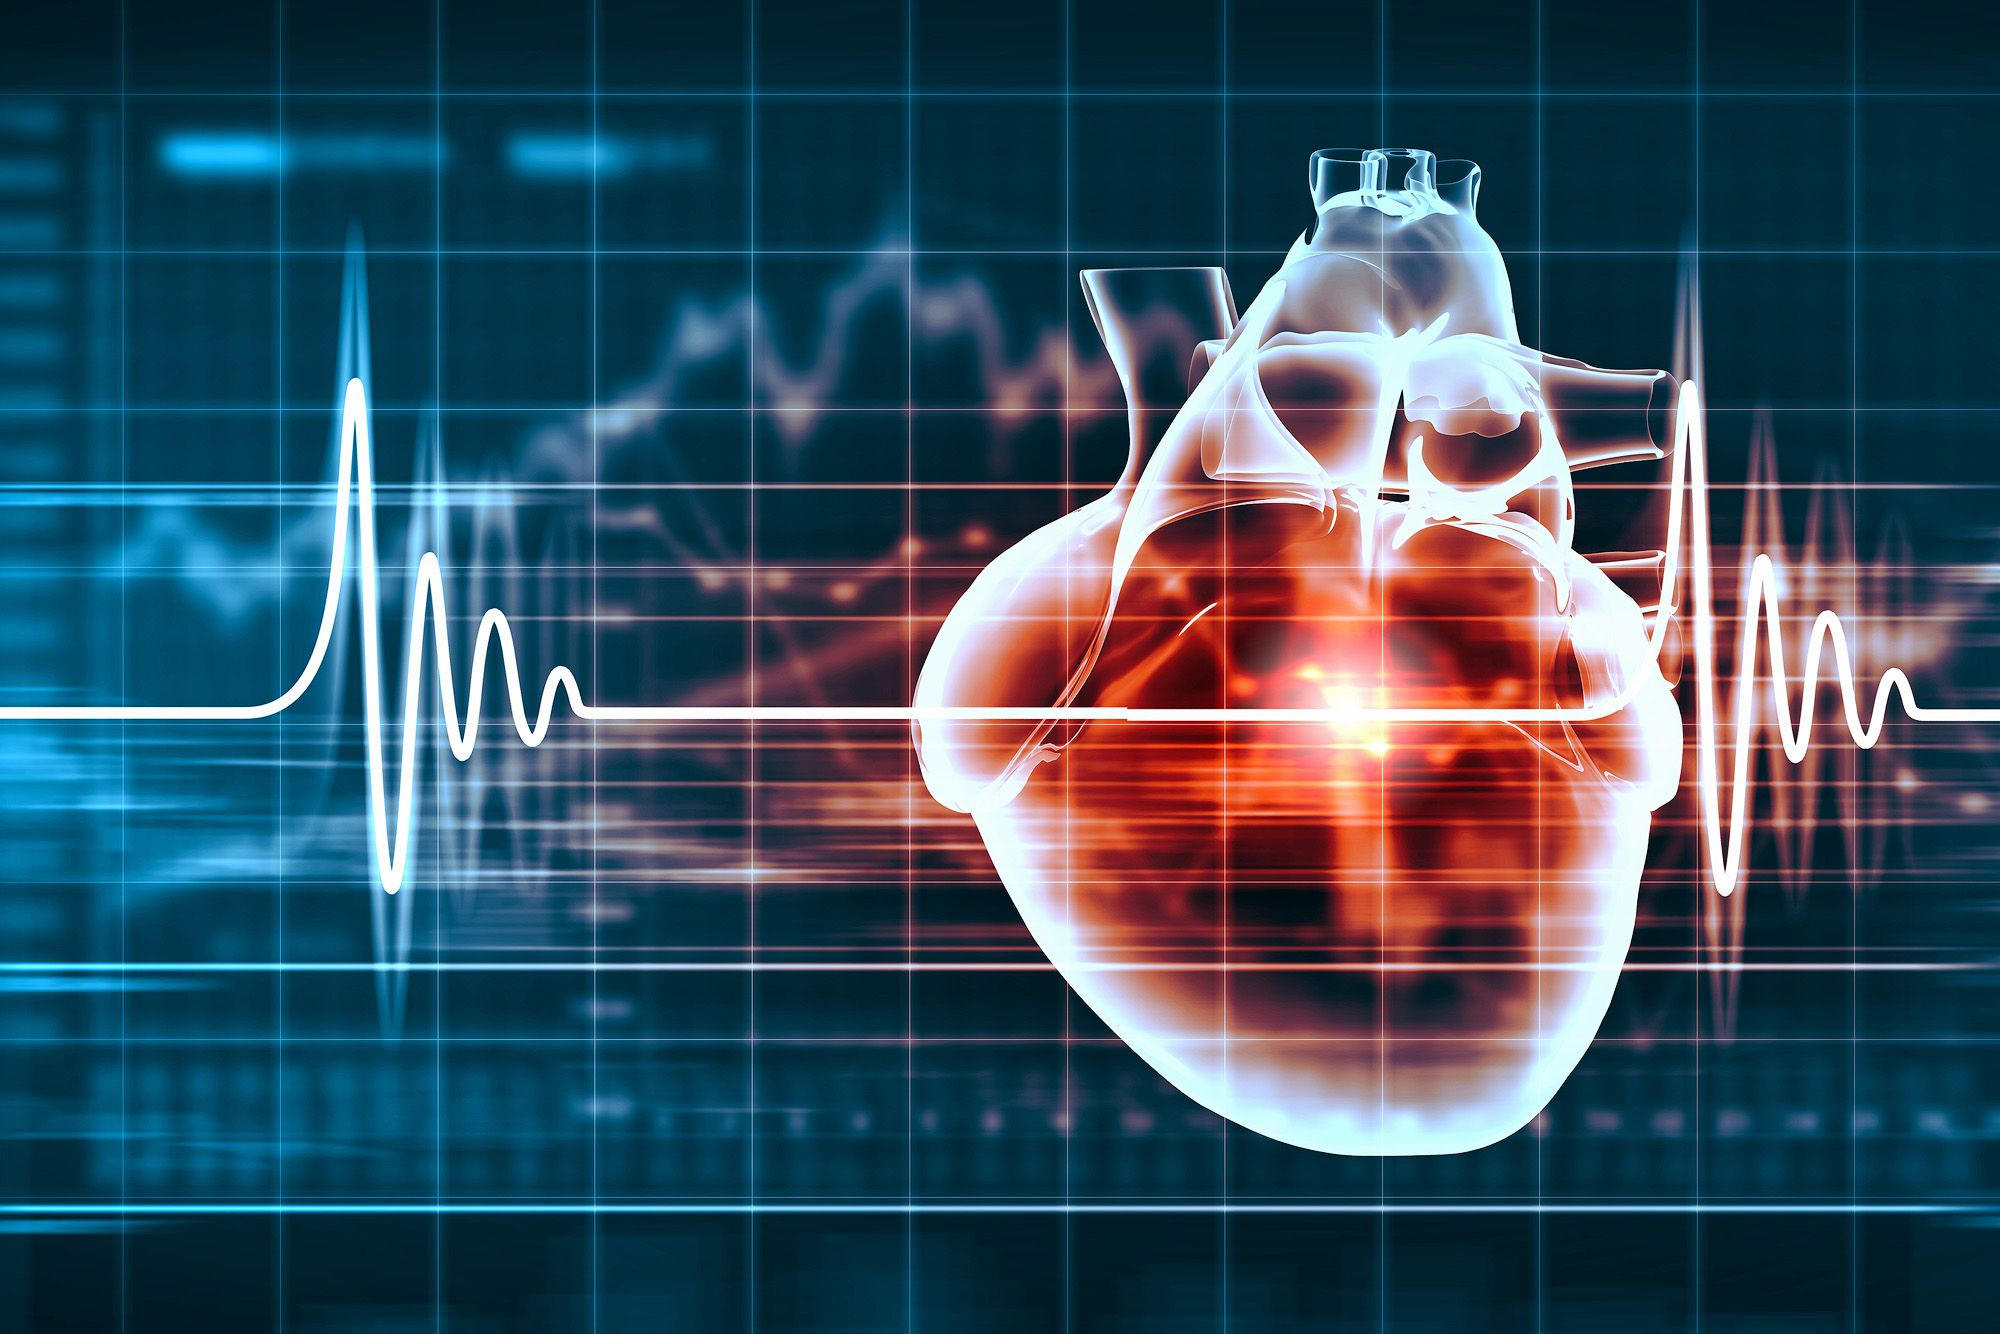 Digital health tools offer new opportunities for personalized care